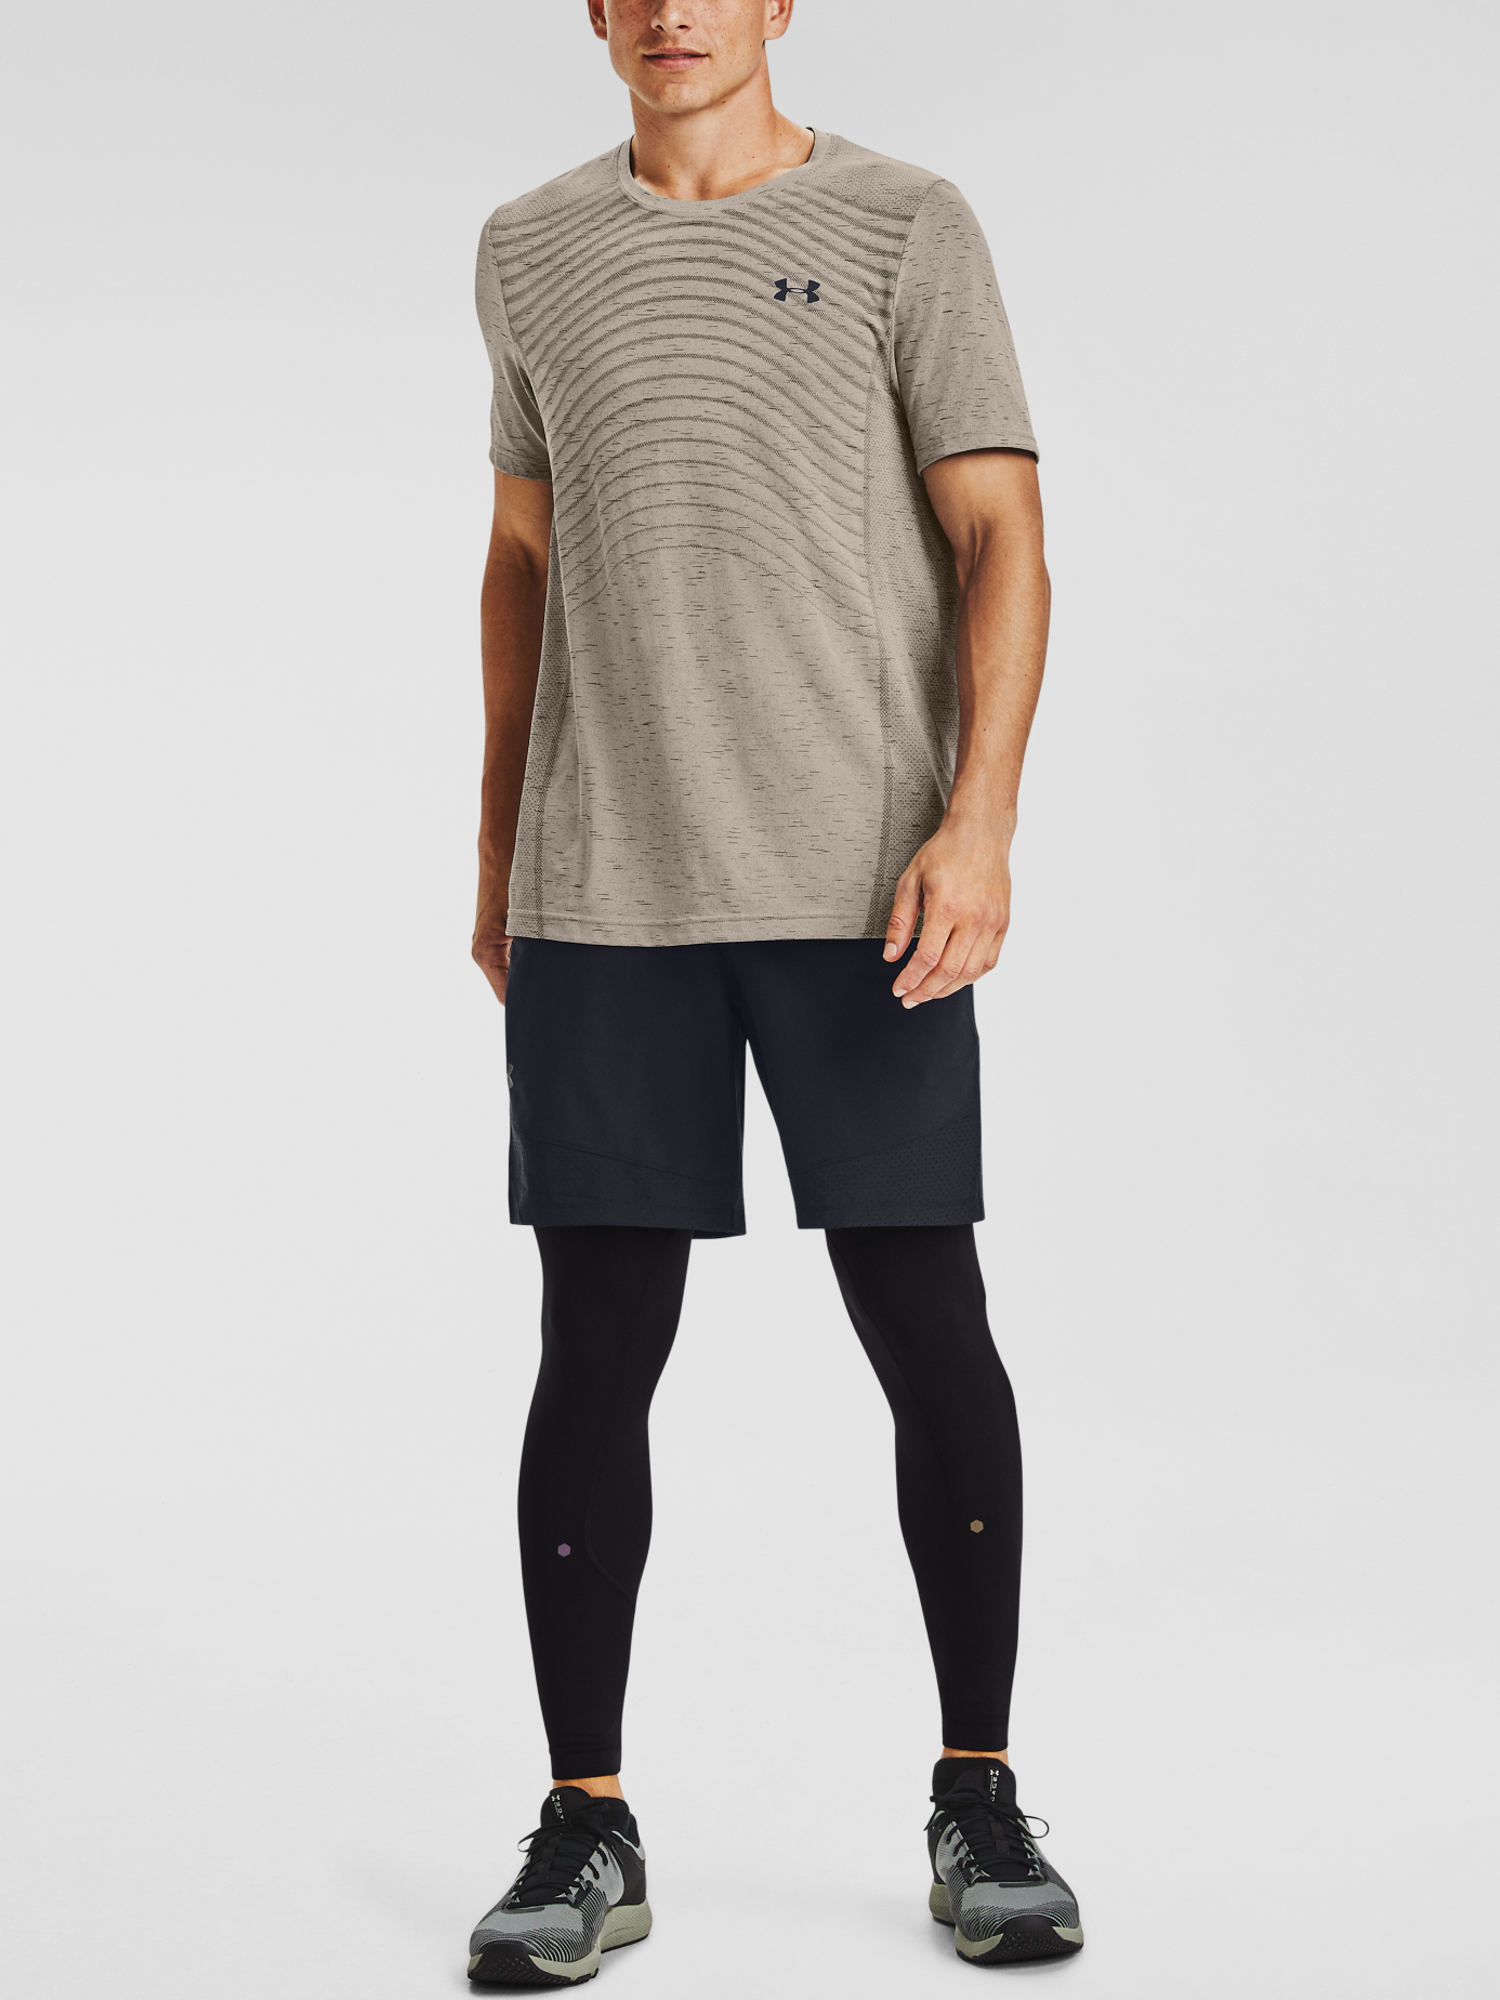 Tričko Under Armour UA Seamless Wave SS (6)